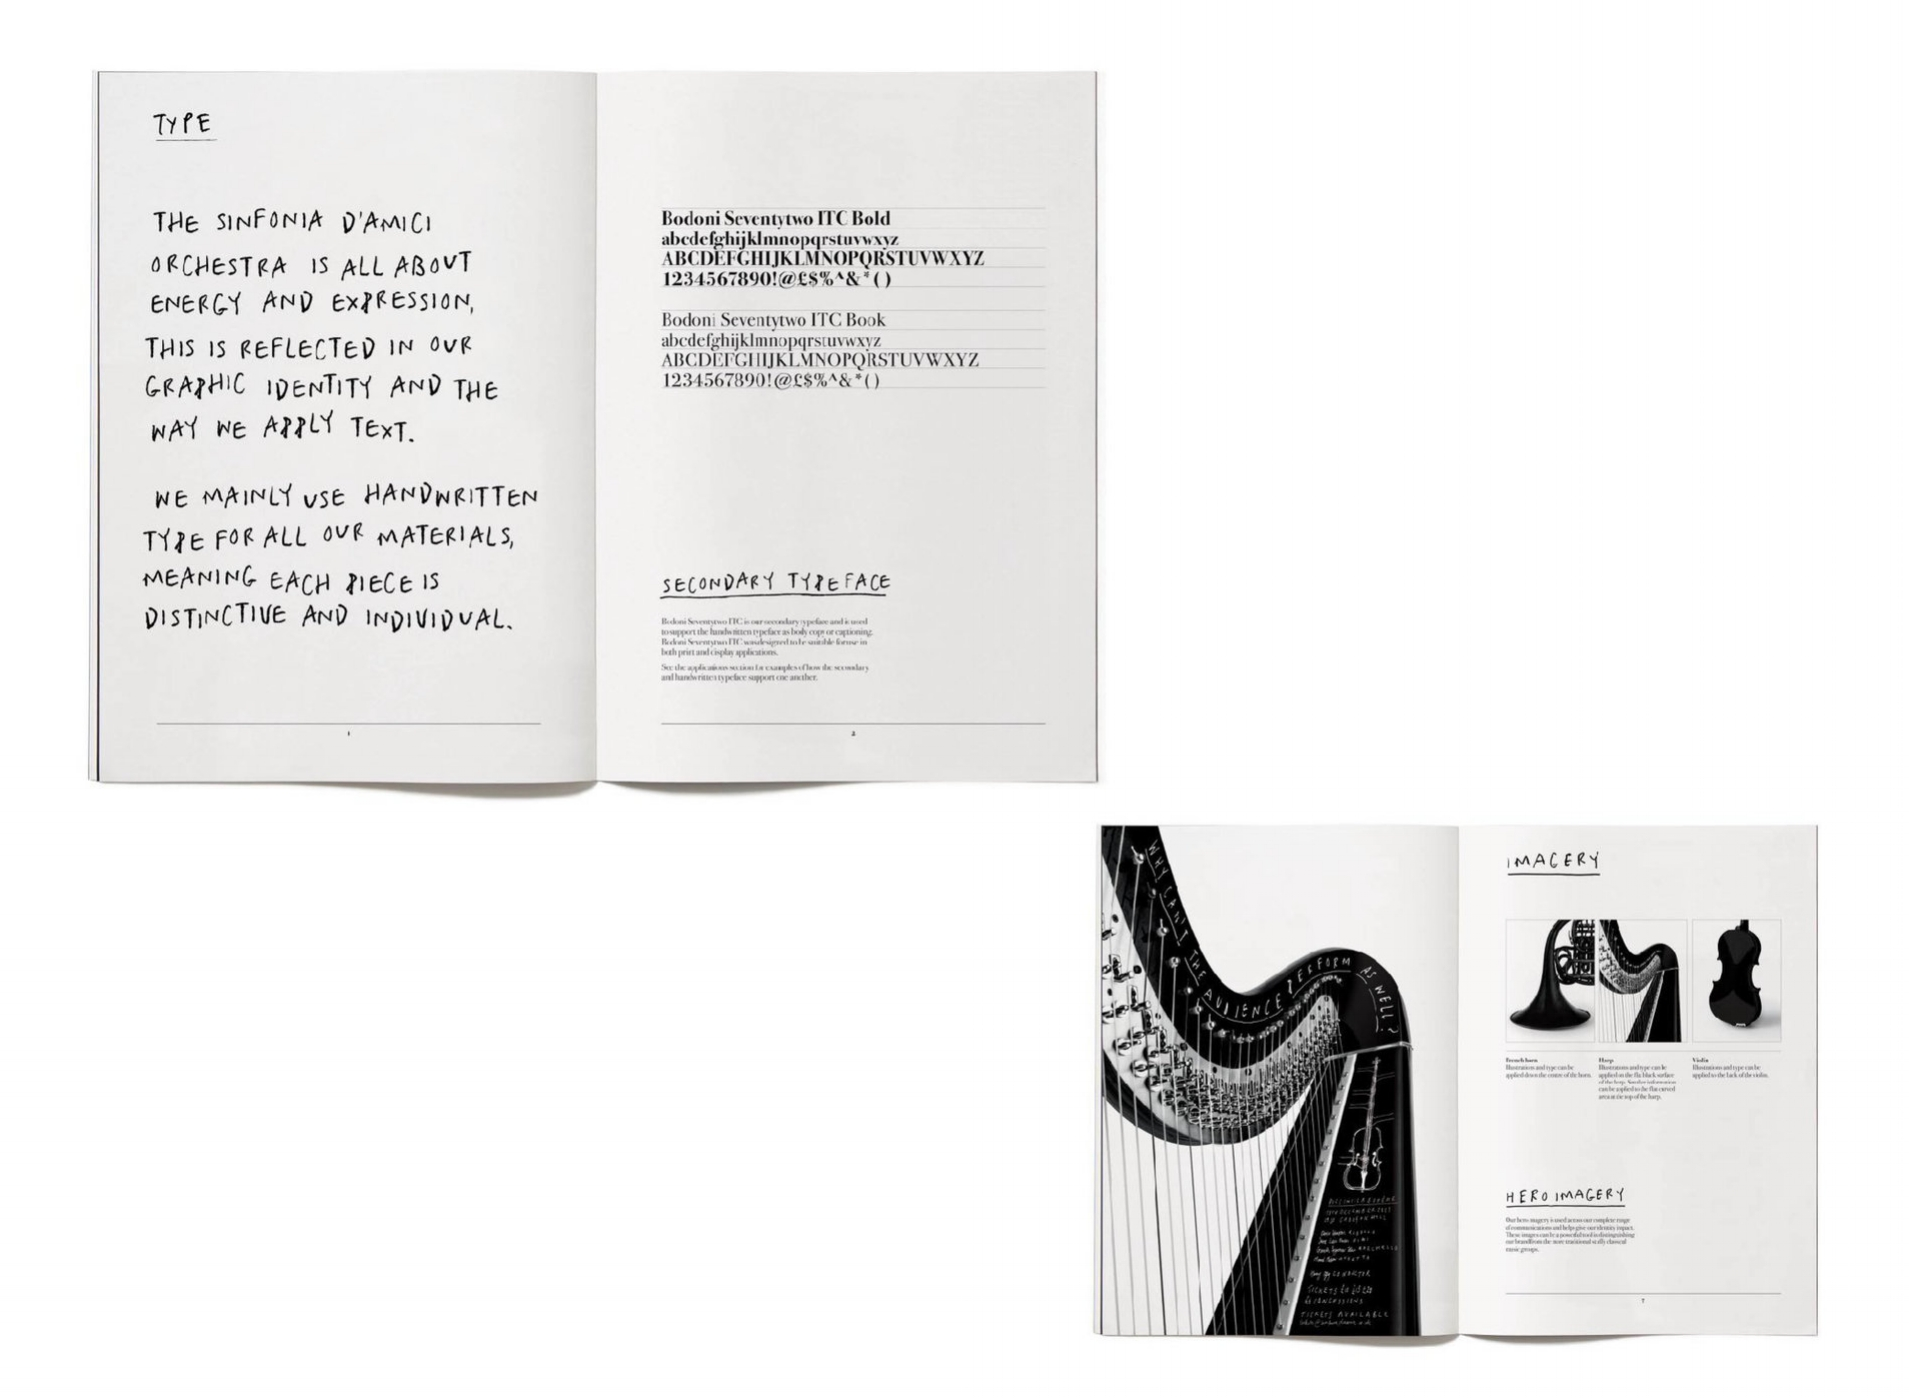 Structure in chaos - The development of the visual identity included a nod to classical music with the use of a classic typeface, Bodoni. This added an element of structure to communications pieces.